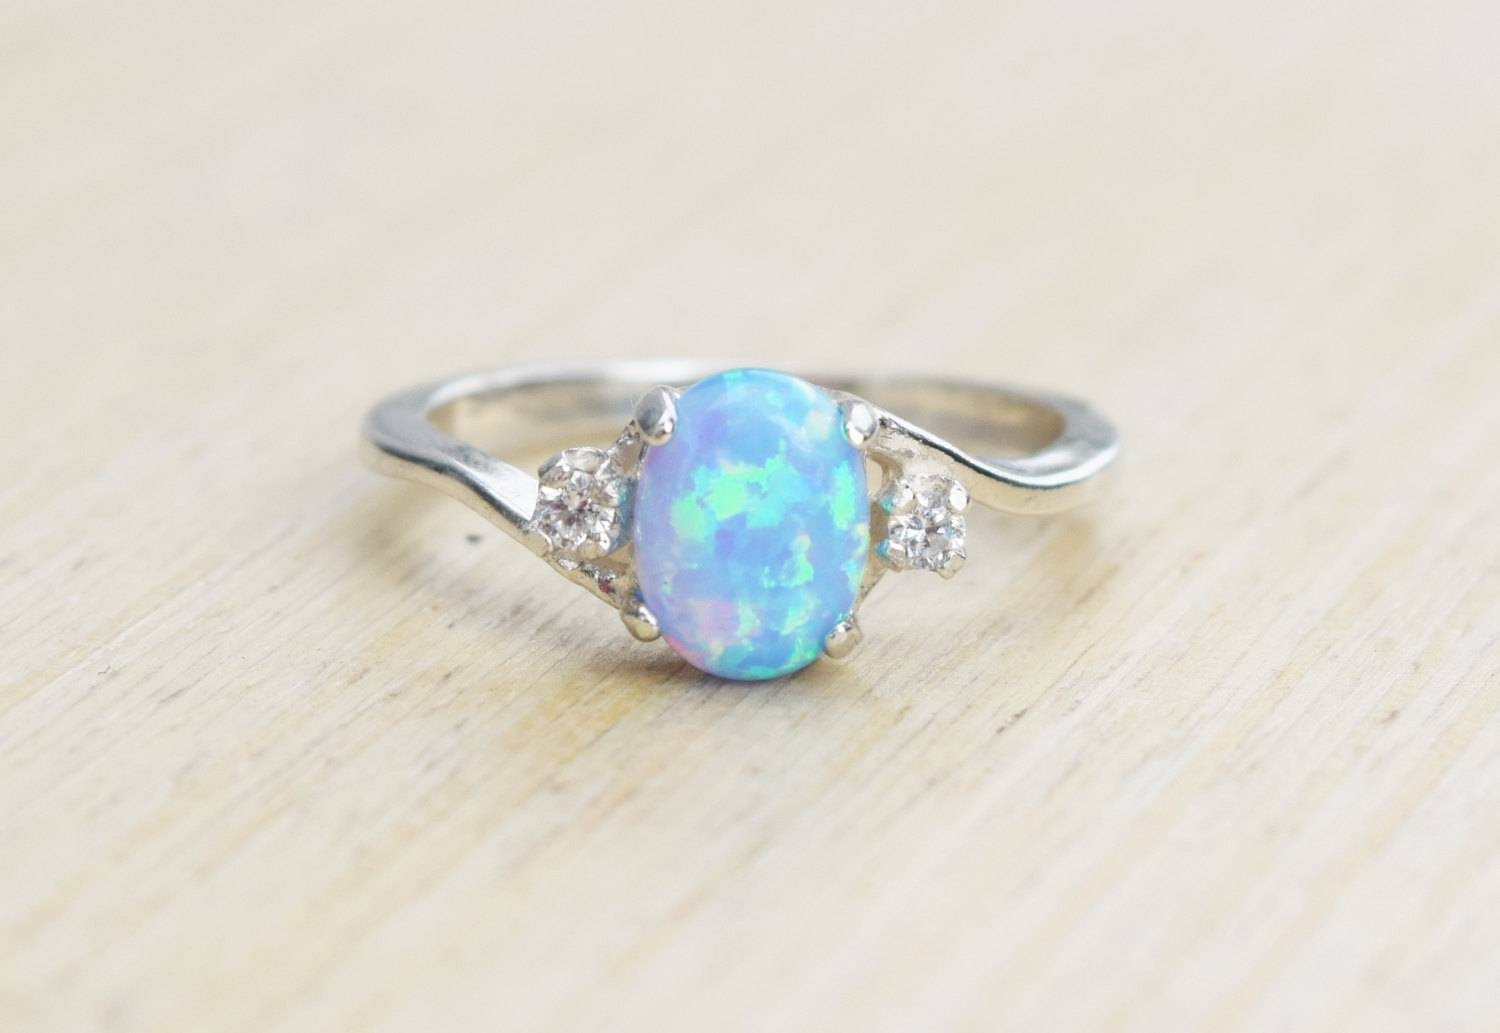 Silver Lab Opal Ring Blue Opal Ring Light Blue Opal Ring Pertaining To October Birthstone Engagement Rings (View 13 of 15)